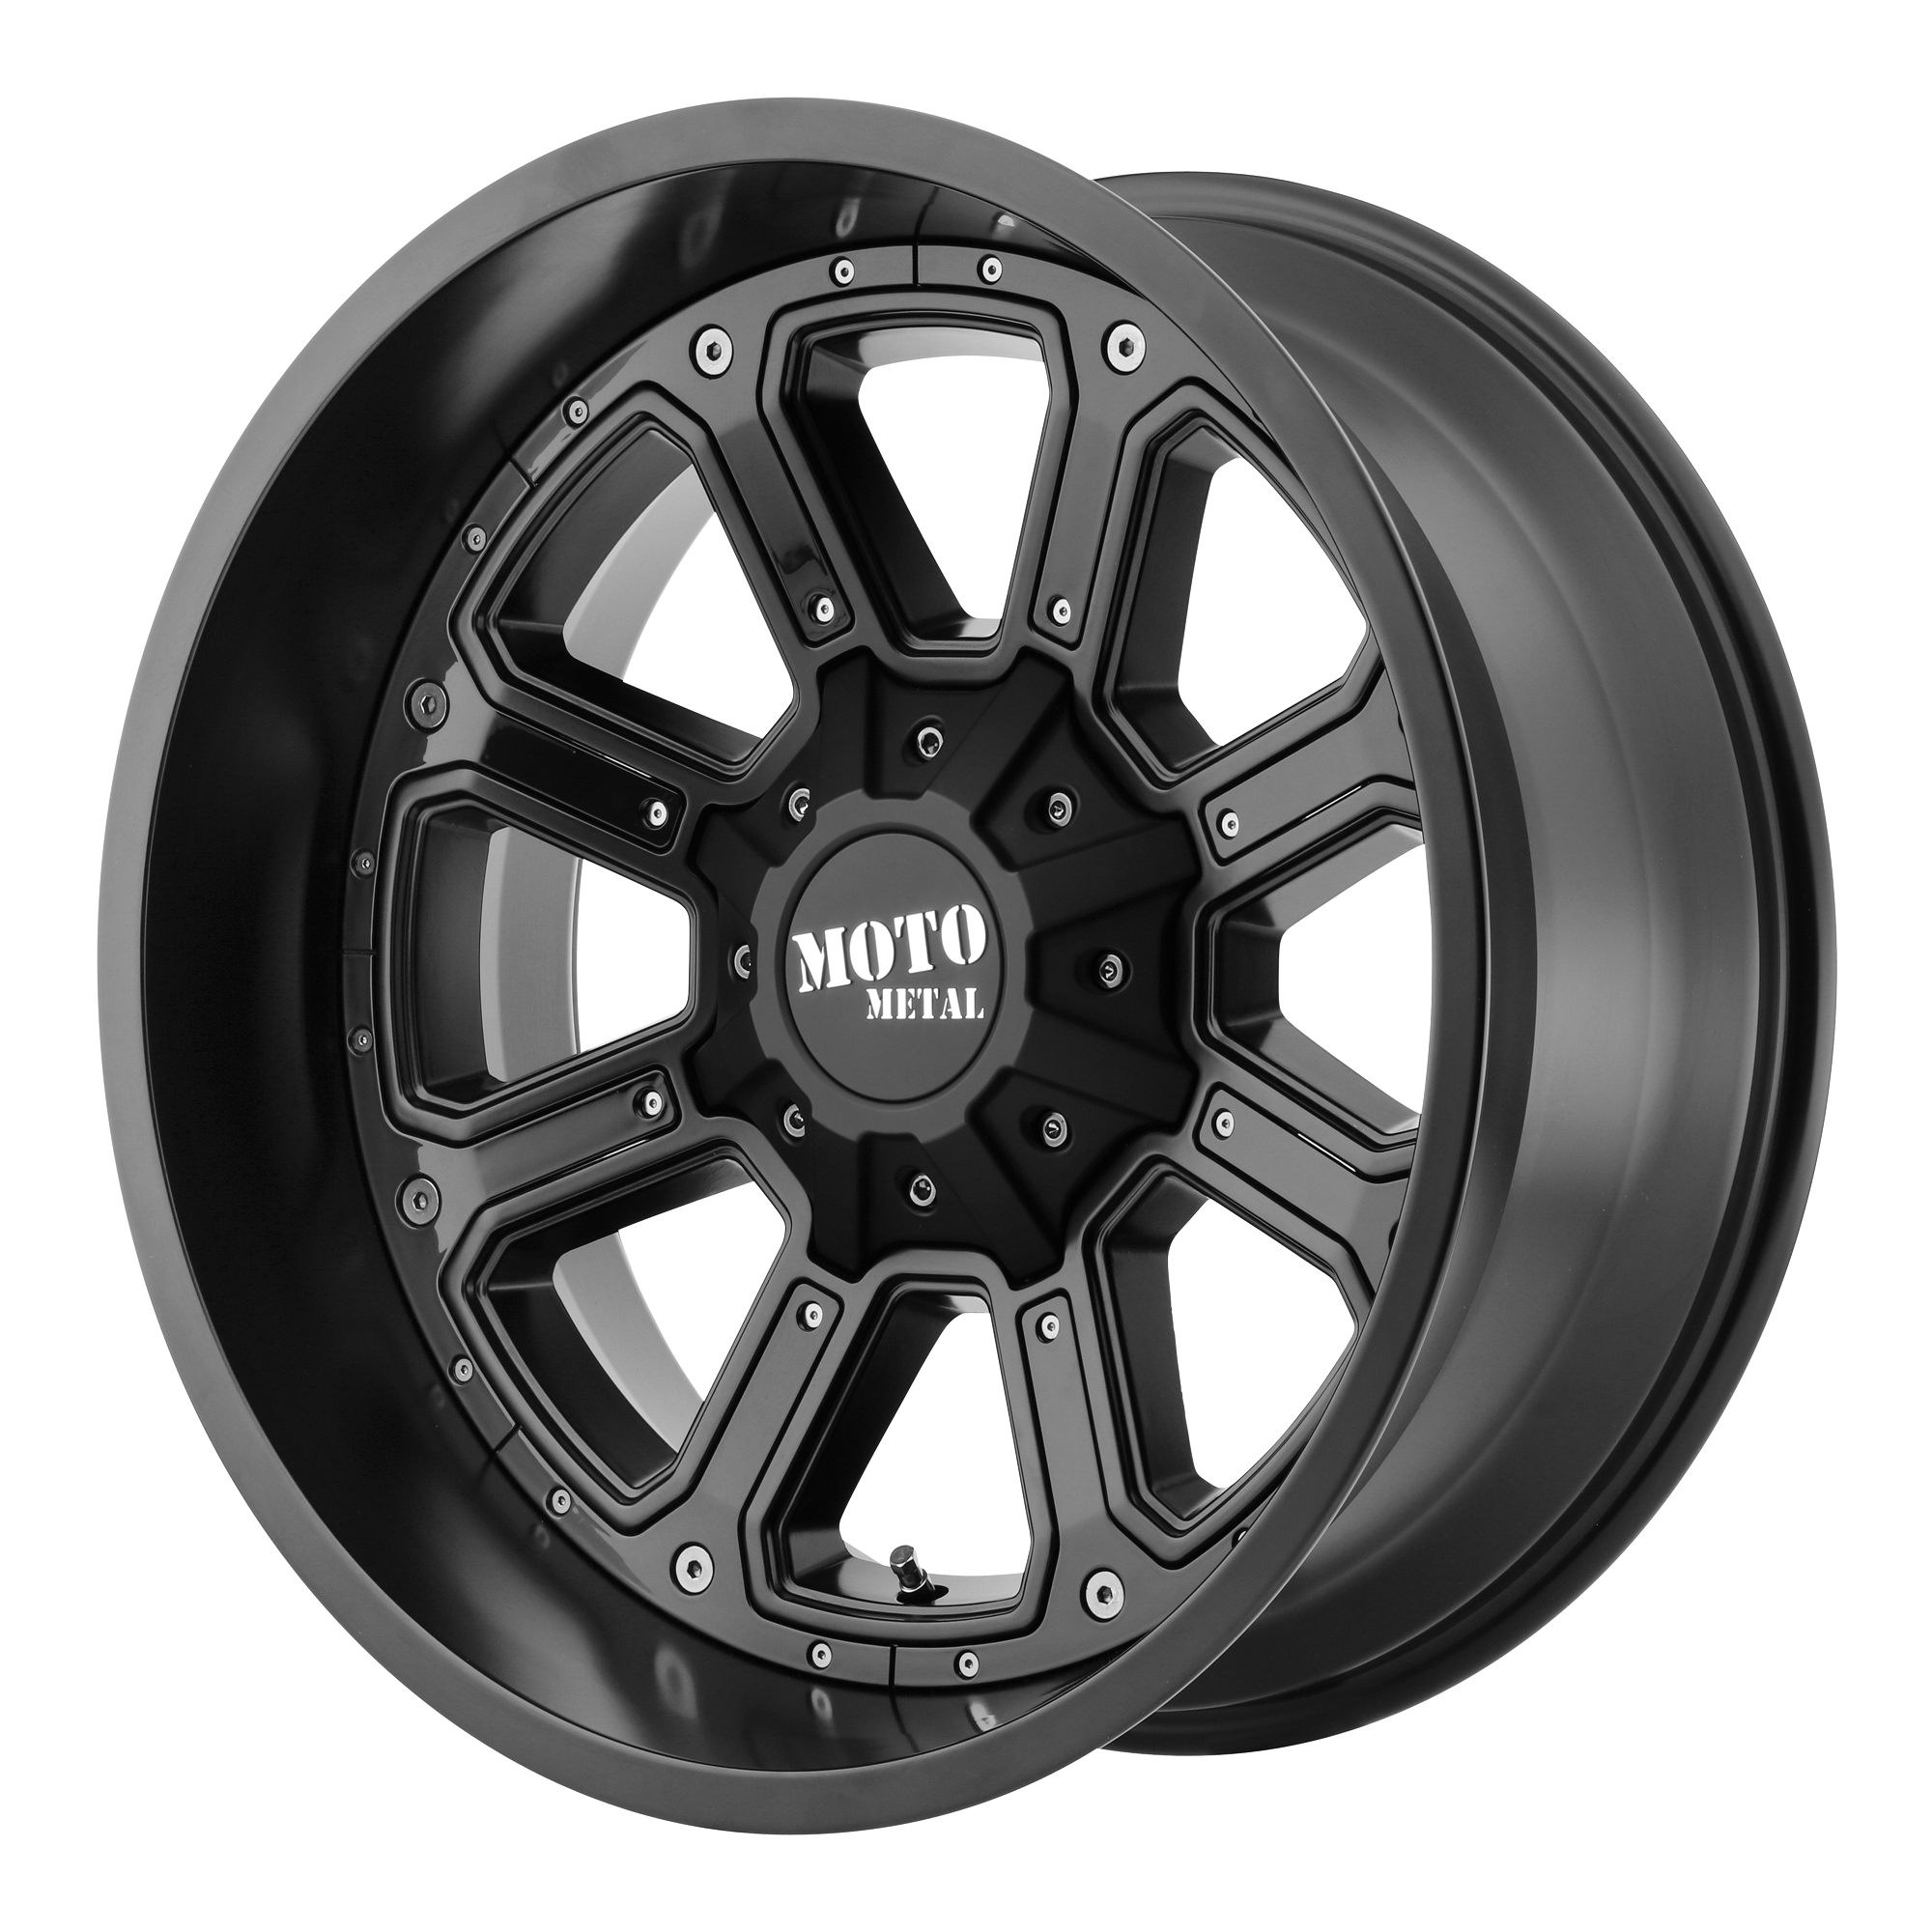 Moto Metal Offroad Wheels SHIFT Matte Black w/ G-BLK INSERTS